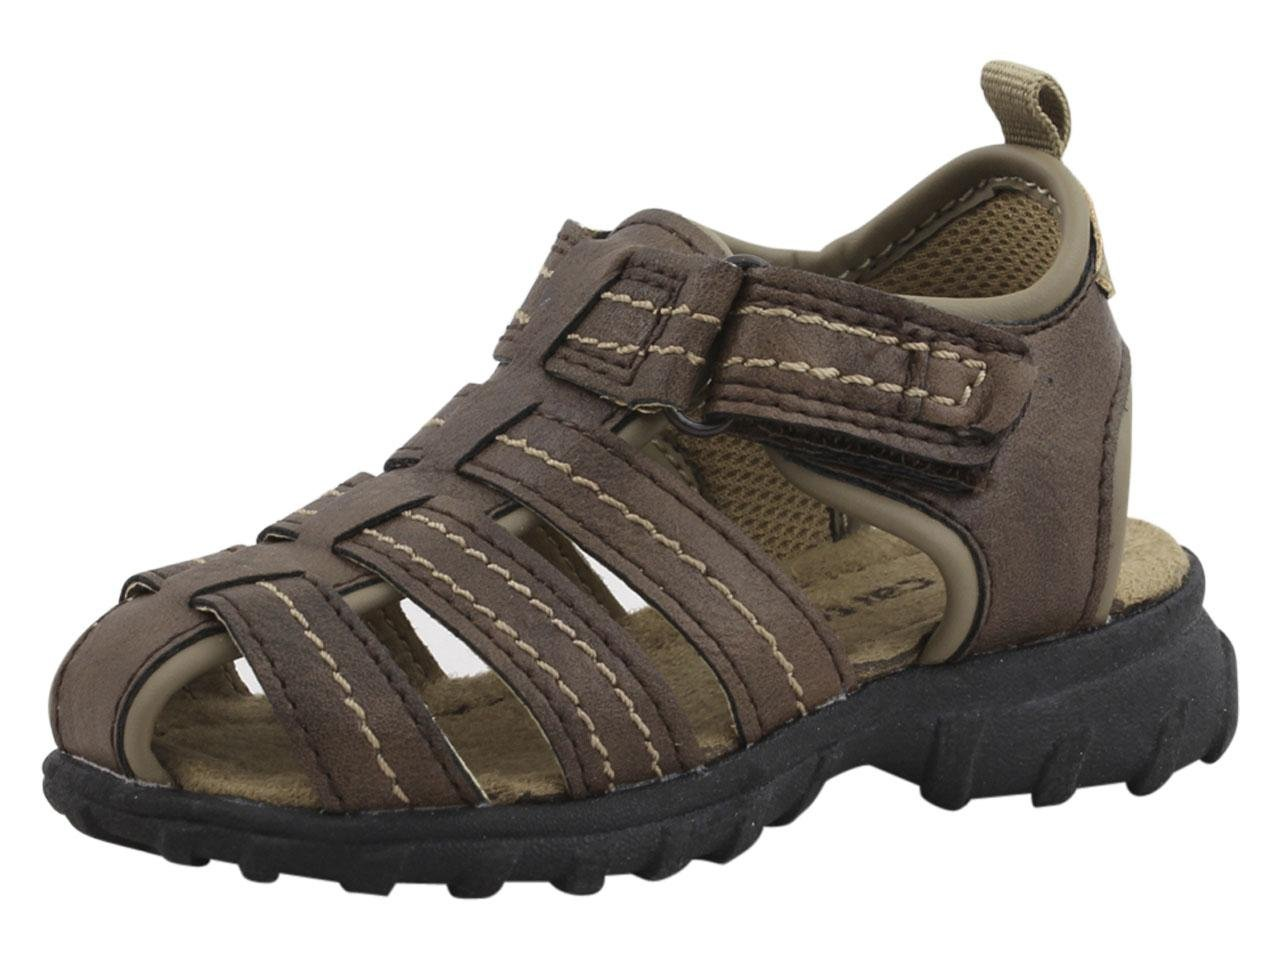 Carter's Jupiter-C Boy's Casual Fisherman Sandal, Brown, 9 M US Toddler